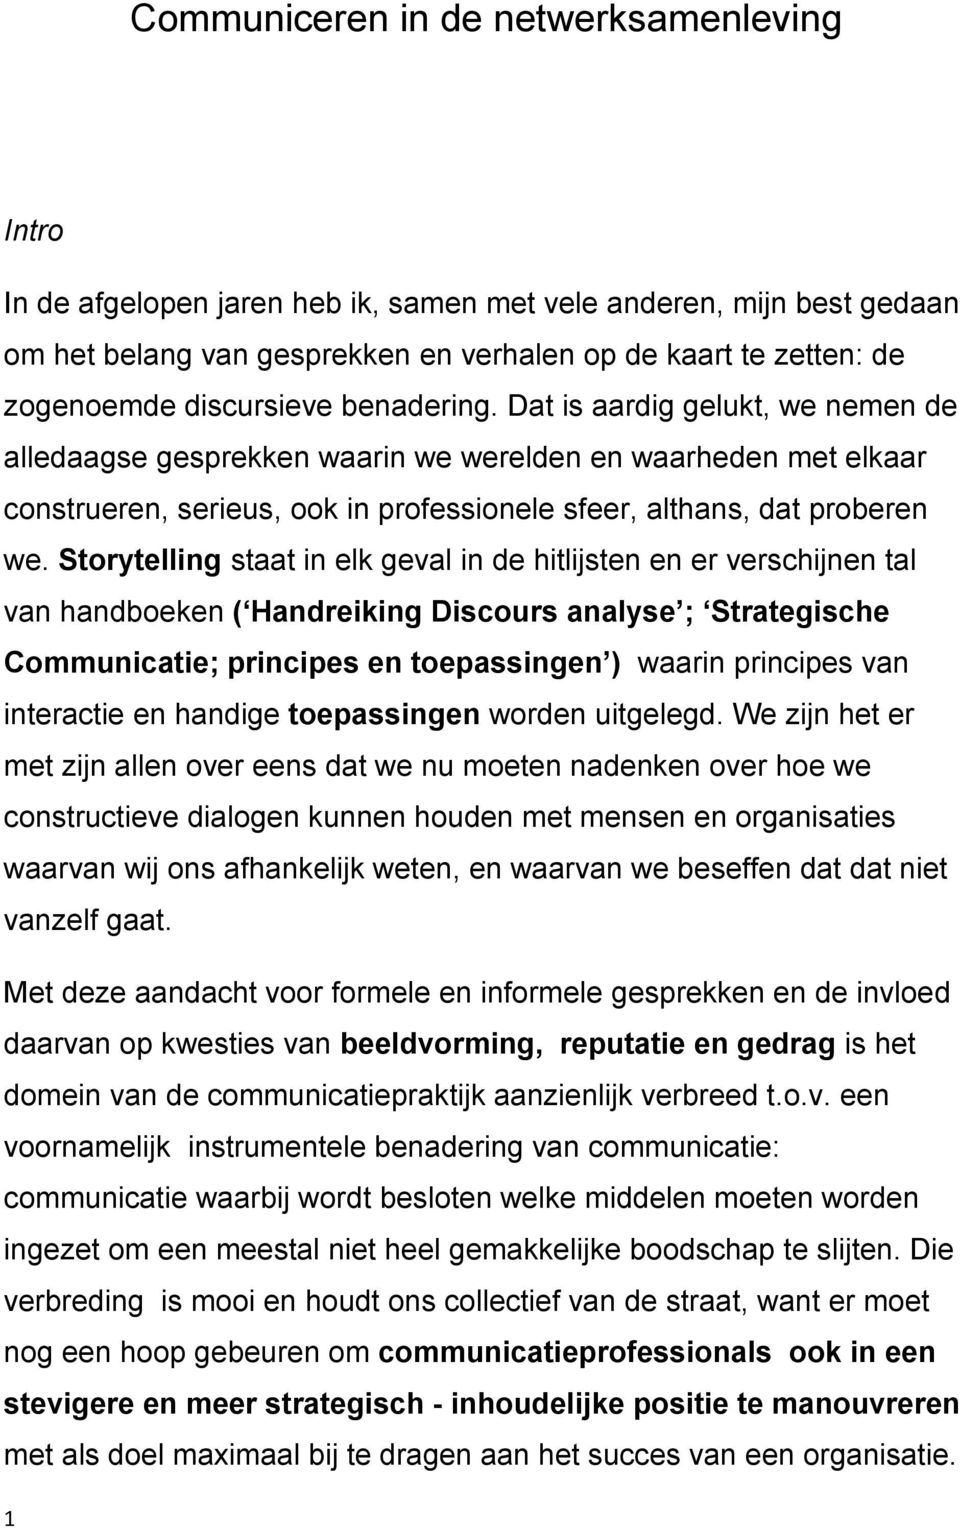 Storytelling staat in elk geval in de hitlijsten en er verschijnen tal van handboeken ( Handreiking Discours analyse ; Strategische Communicatie; principes en toepassingen ) waarin principes van